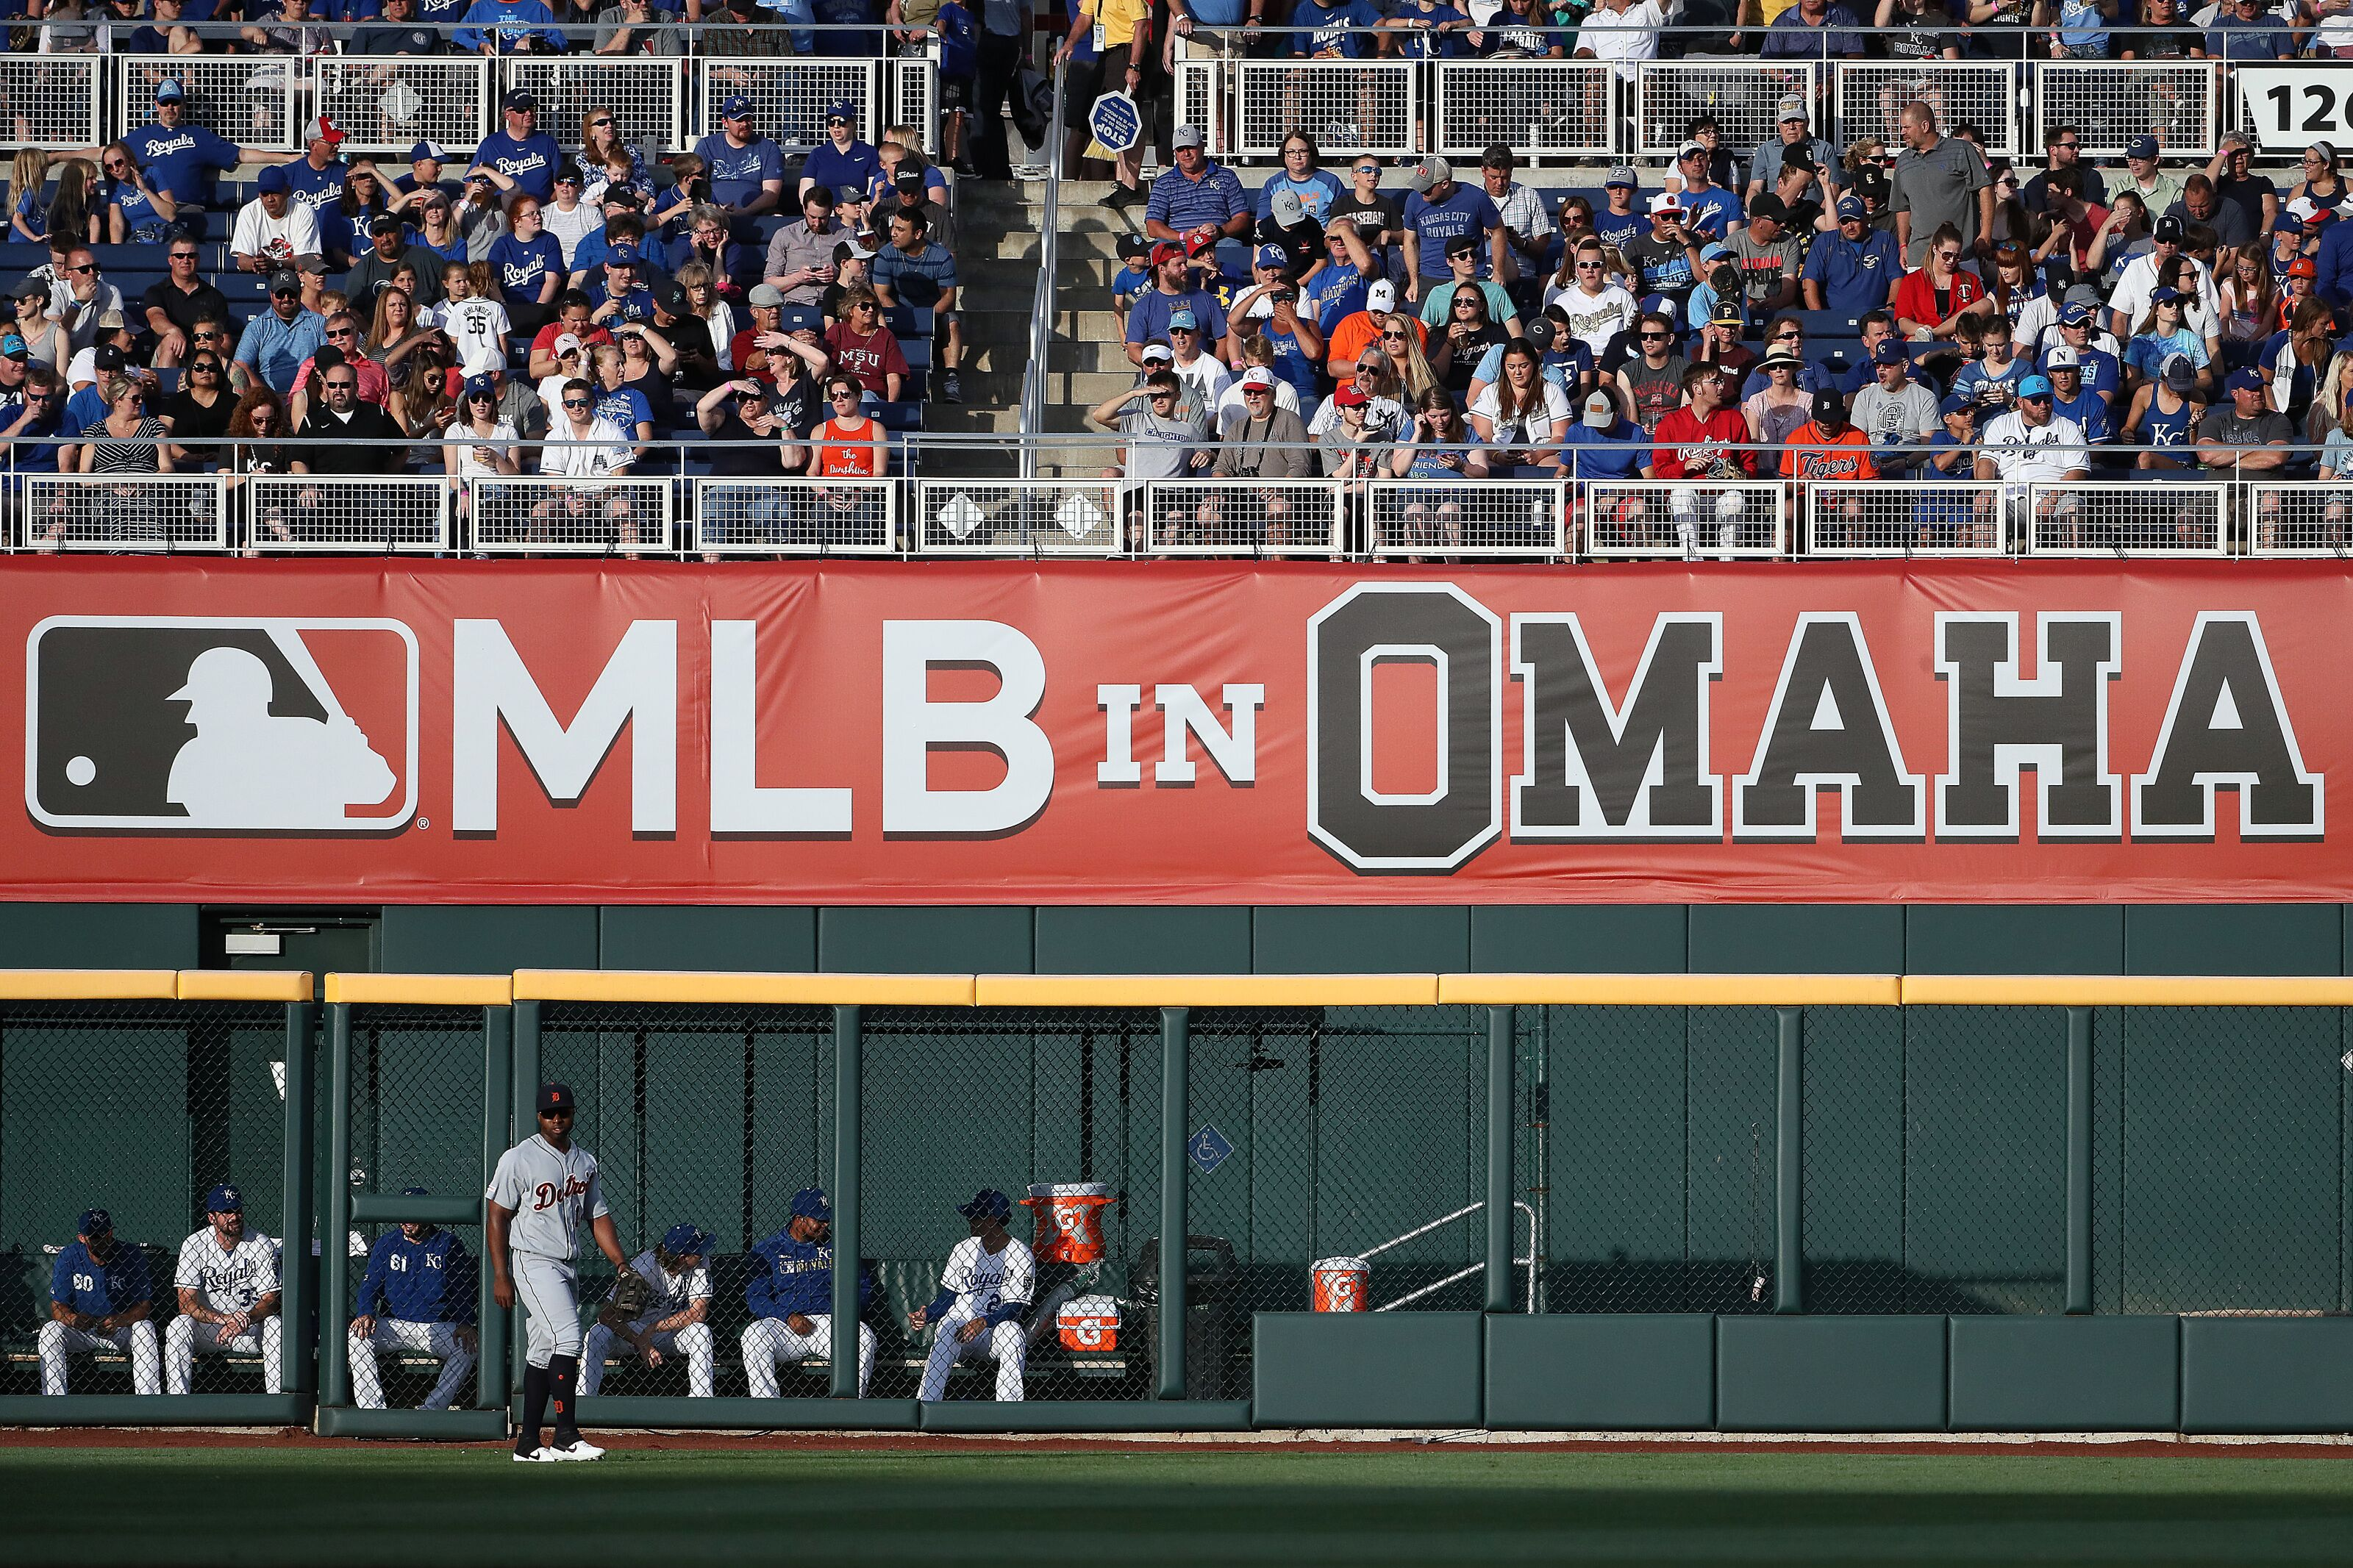 Kansas City Royals should play in Omaha every year